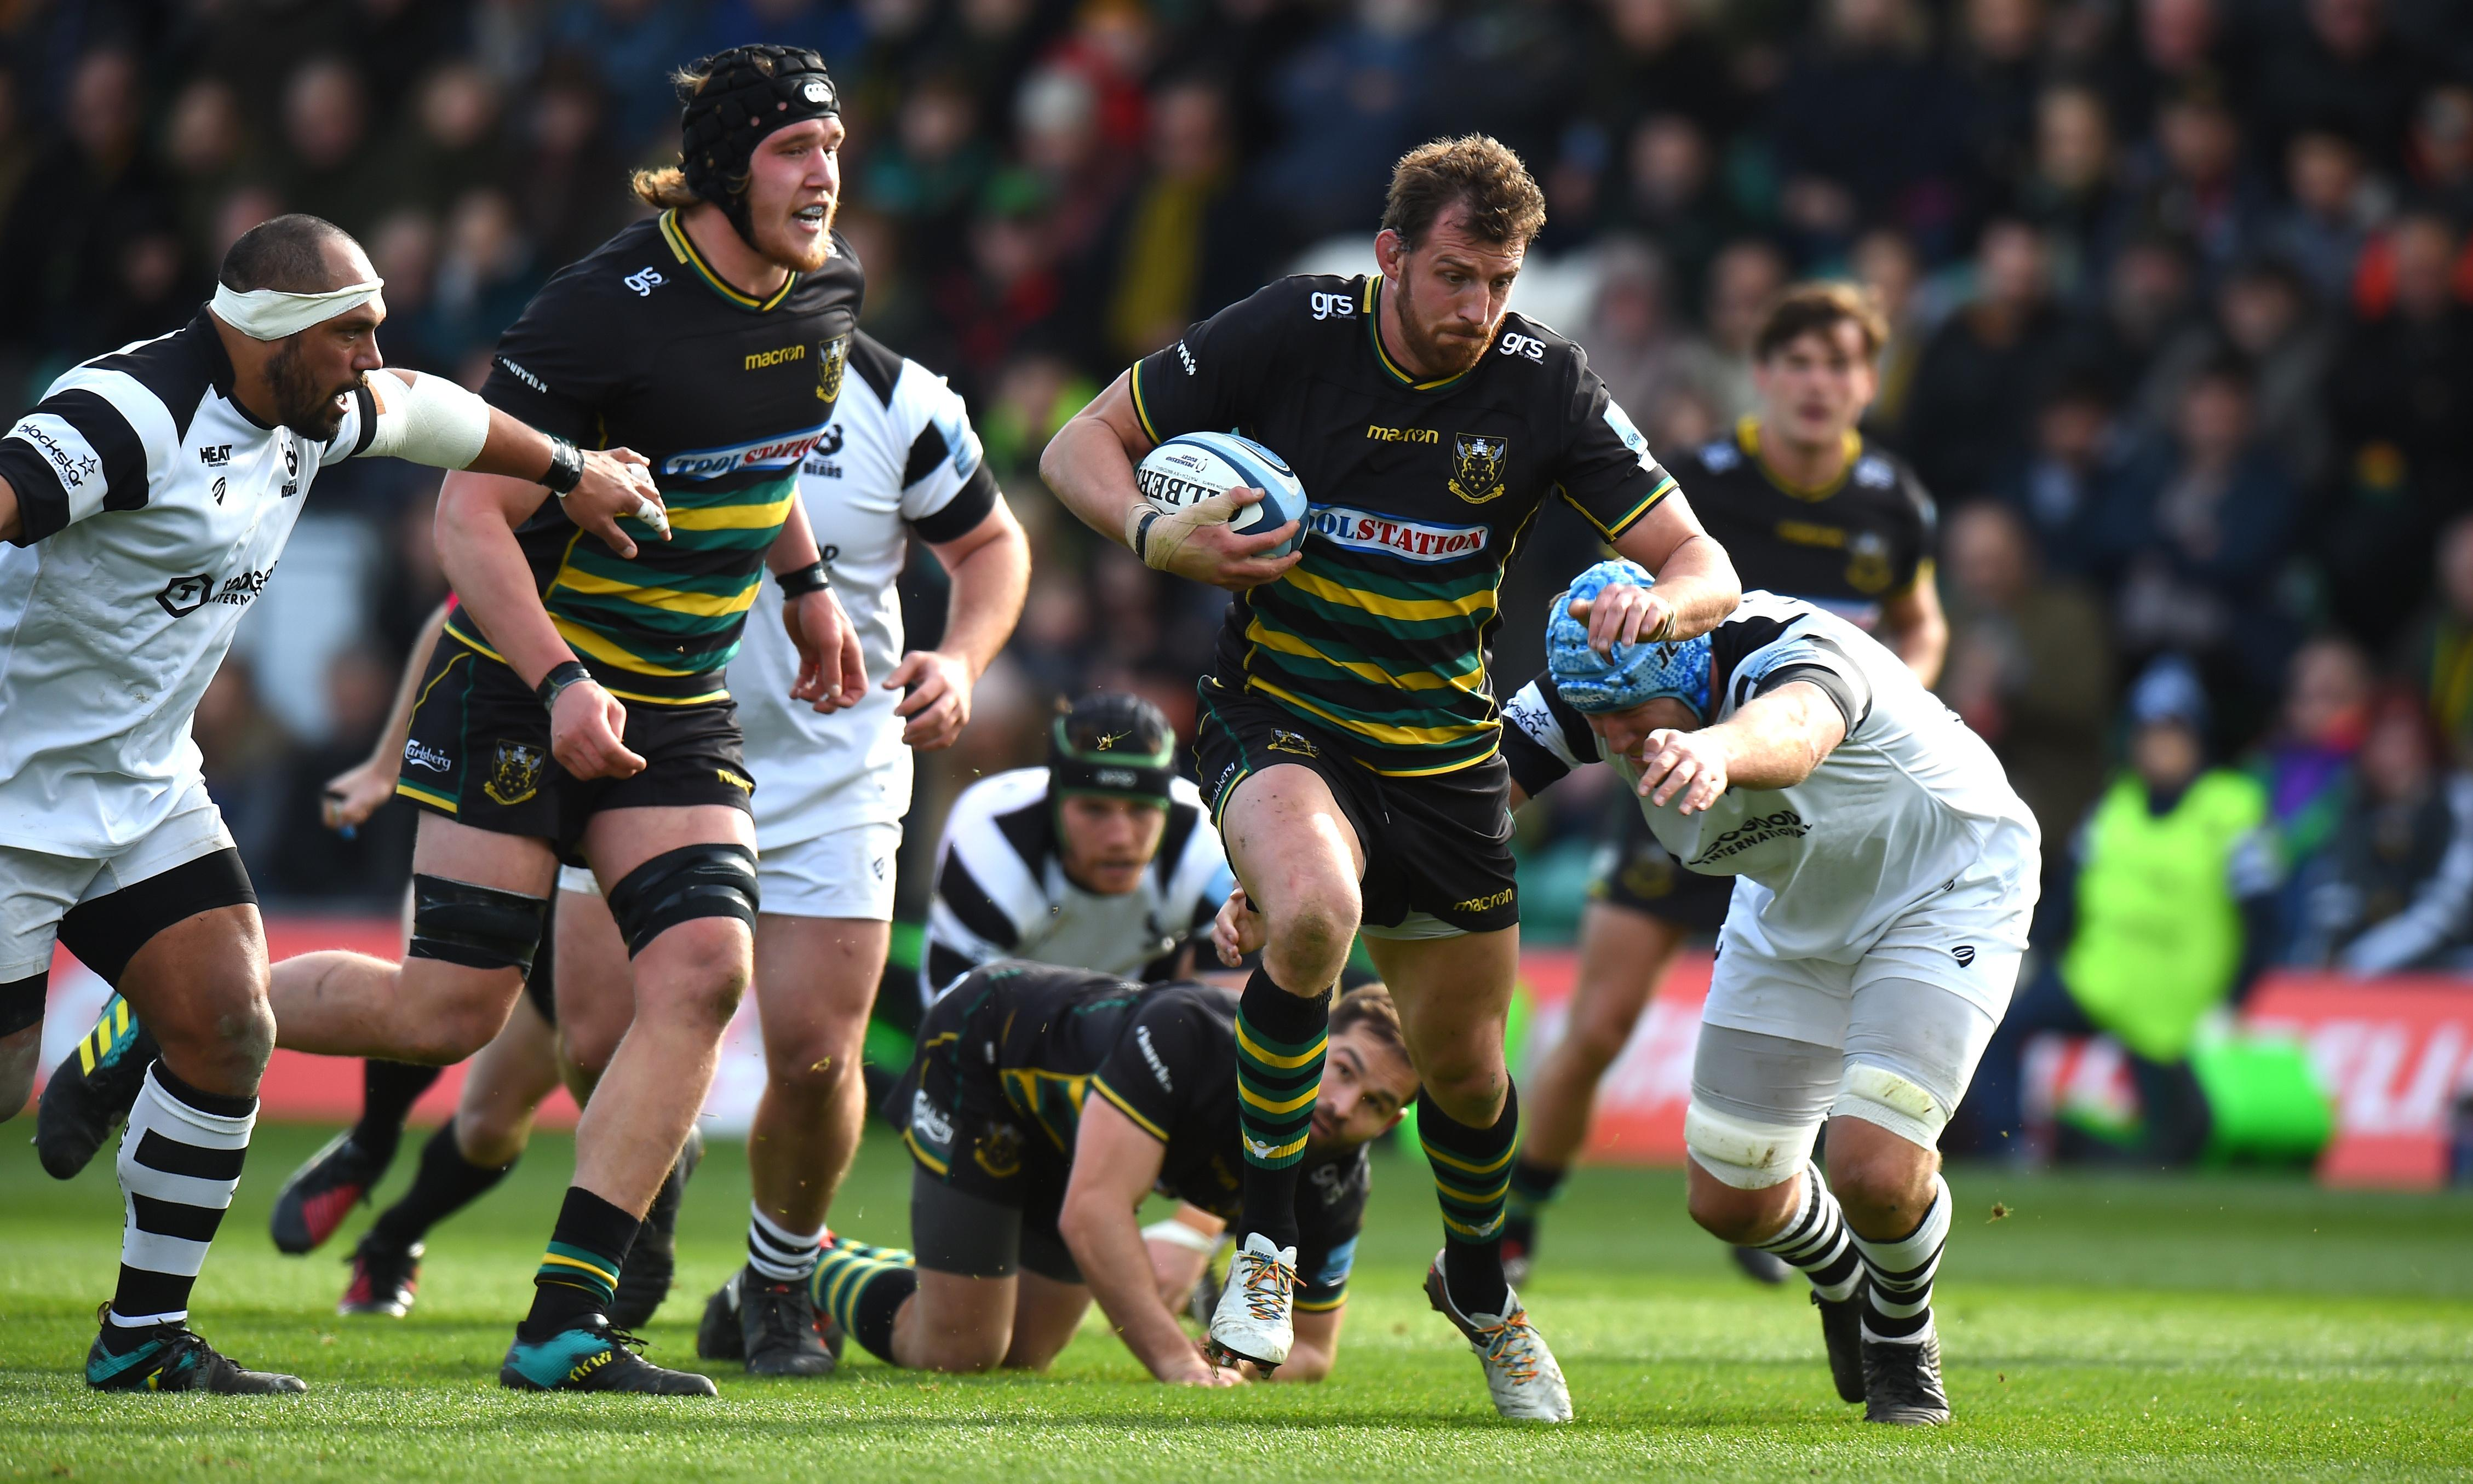 Northampton have 'puncher's chance' of upset against Exeter, says Tom Wood